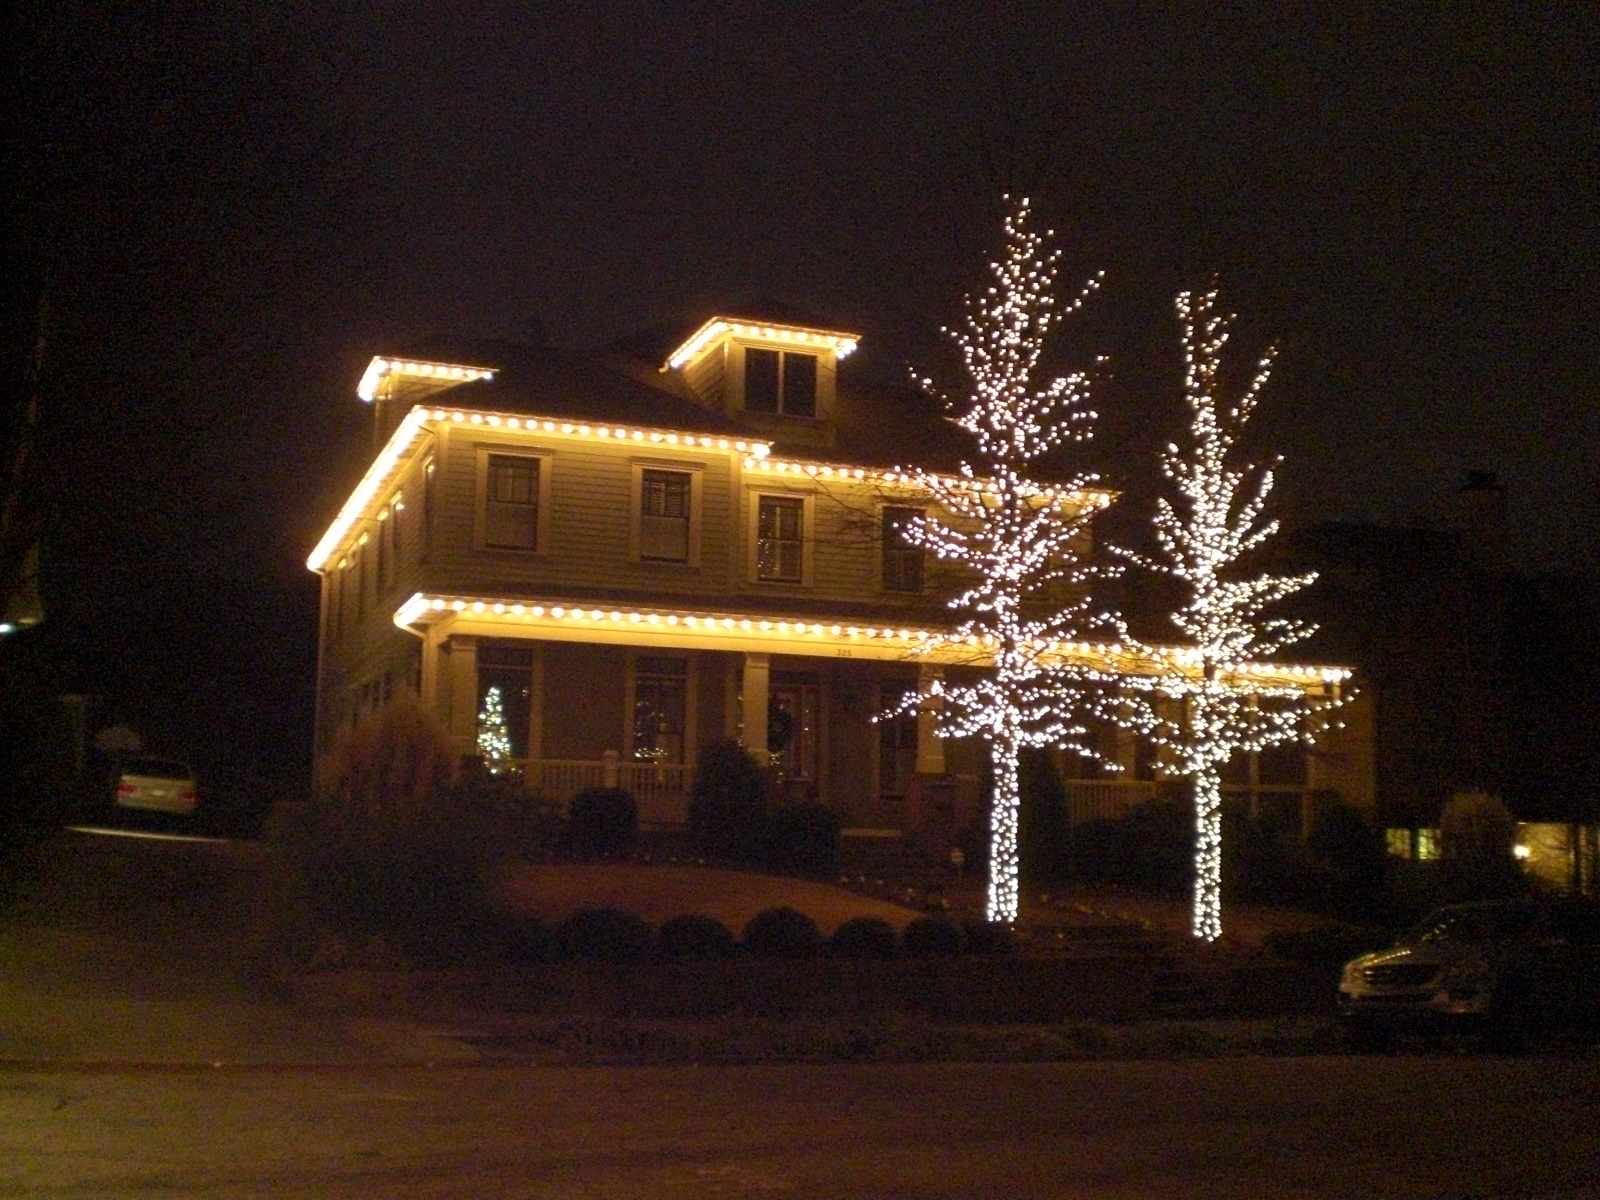 http://homesfeed.com/wp-content/uploads/2015/10/Outdoor-Lights-Decor-Christmas-Exterior-House.jpg